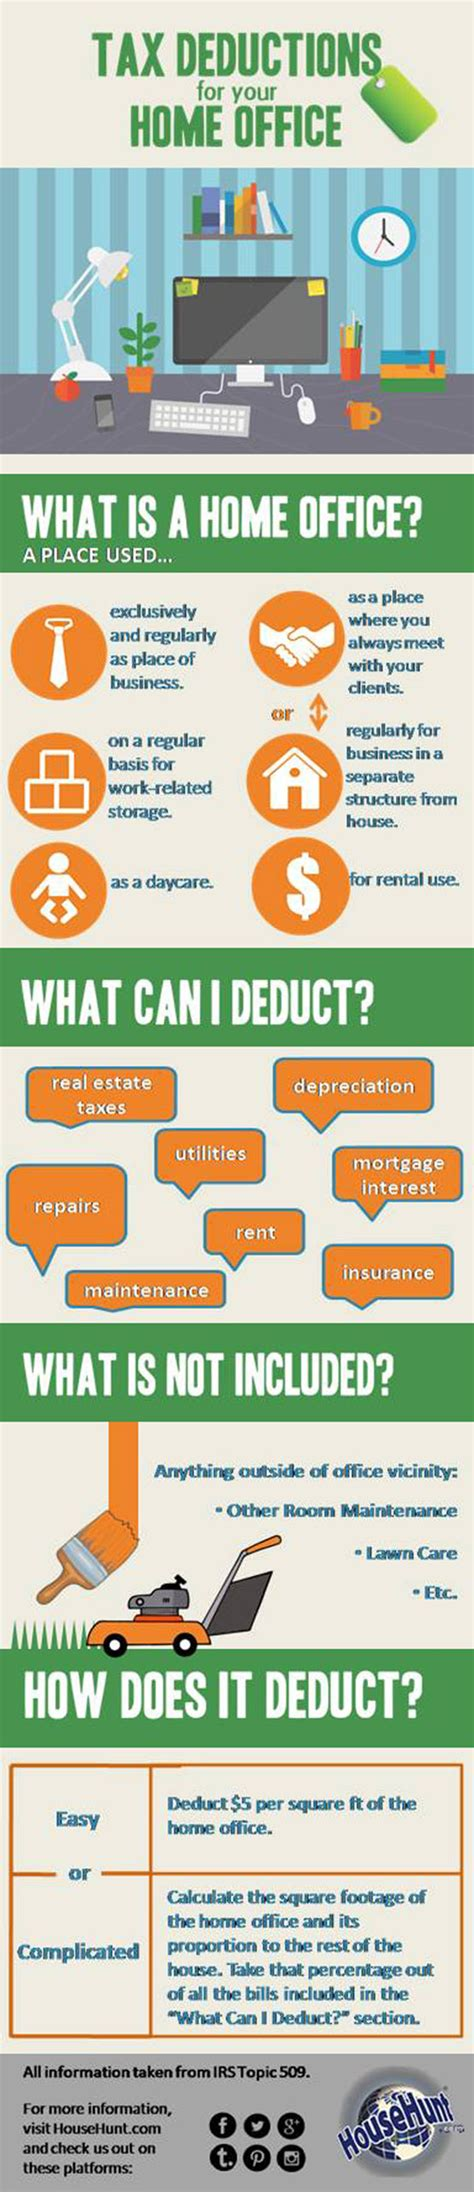 is buying a house tax deductible tax deduction for buying a house 28 images tax deductions for buying a home home